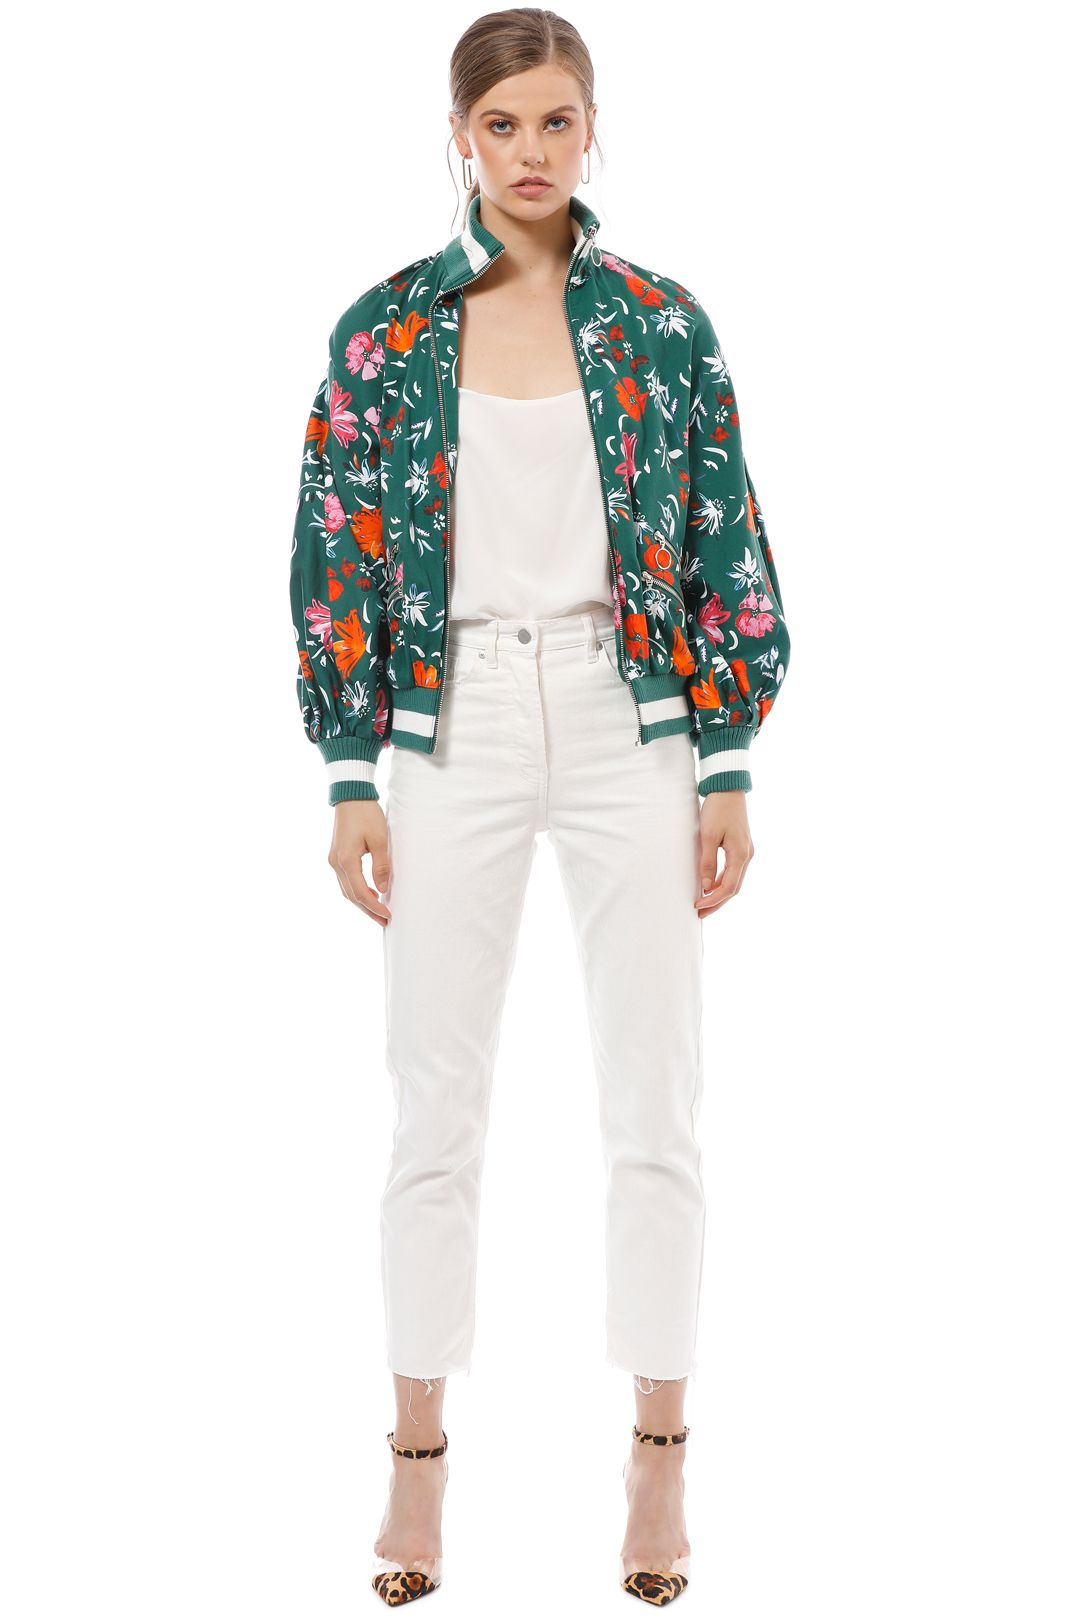 CMEO Collective - Elation Bomber - Green Floral - Front